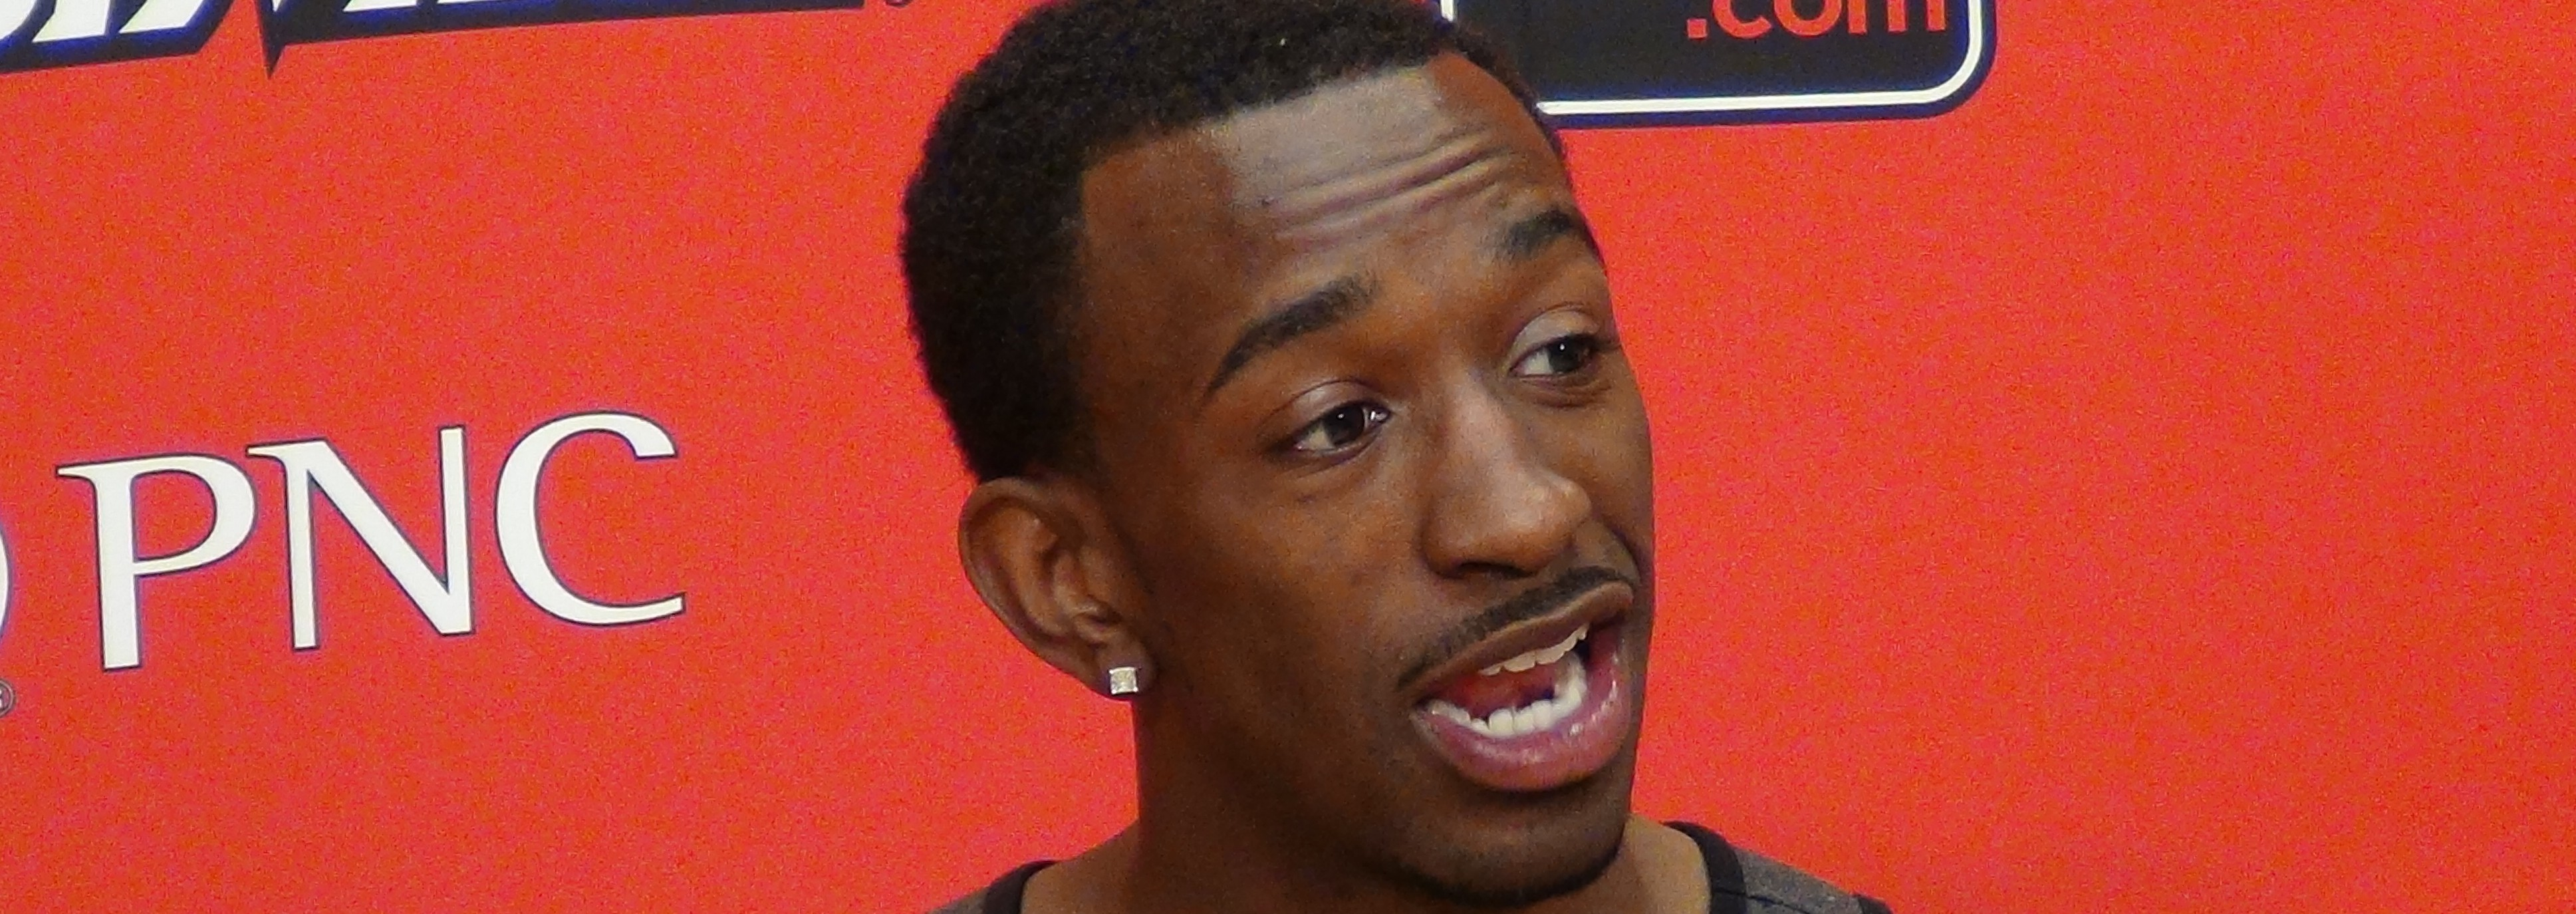 Russ Smith on 2014 Draft Night Gives Interview about getting selected by Philadelphia 76ers and then traded to the New Orleans Pelicans Photo by Mark Blankenbaker